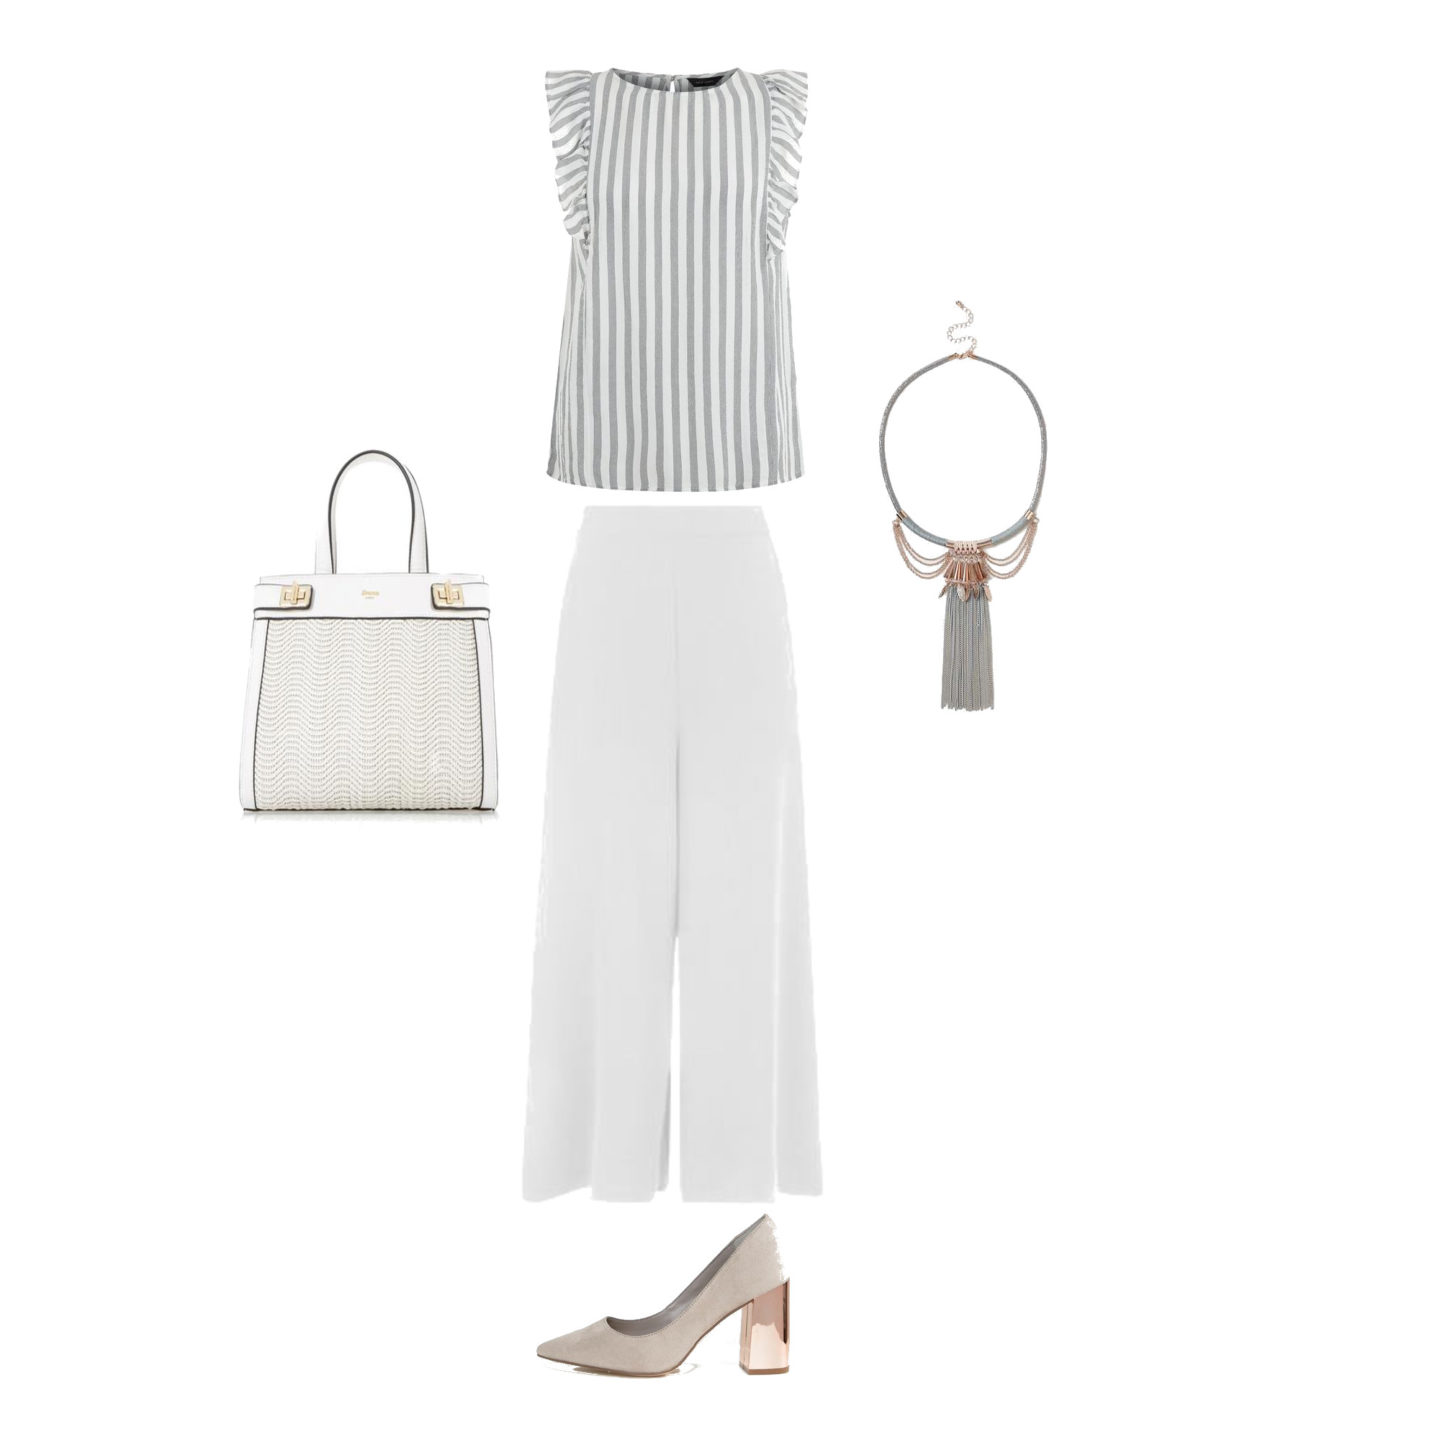 Outfit Inspiration – How to Style Culottes!